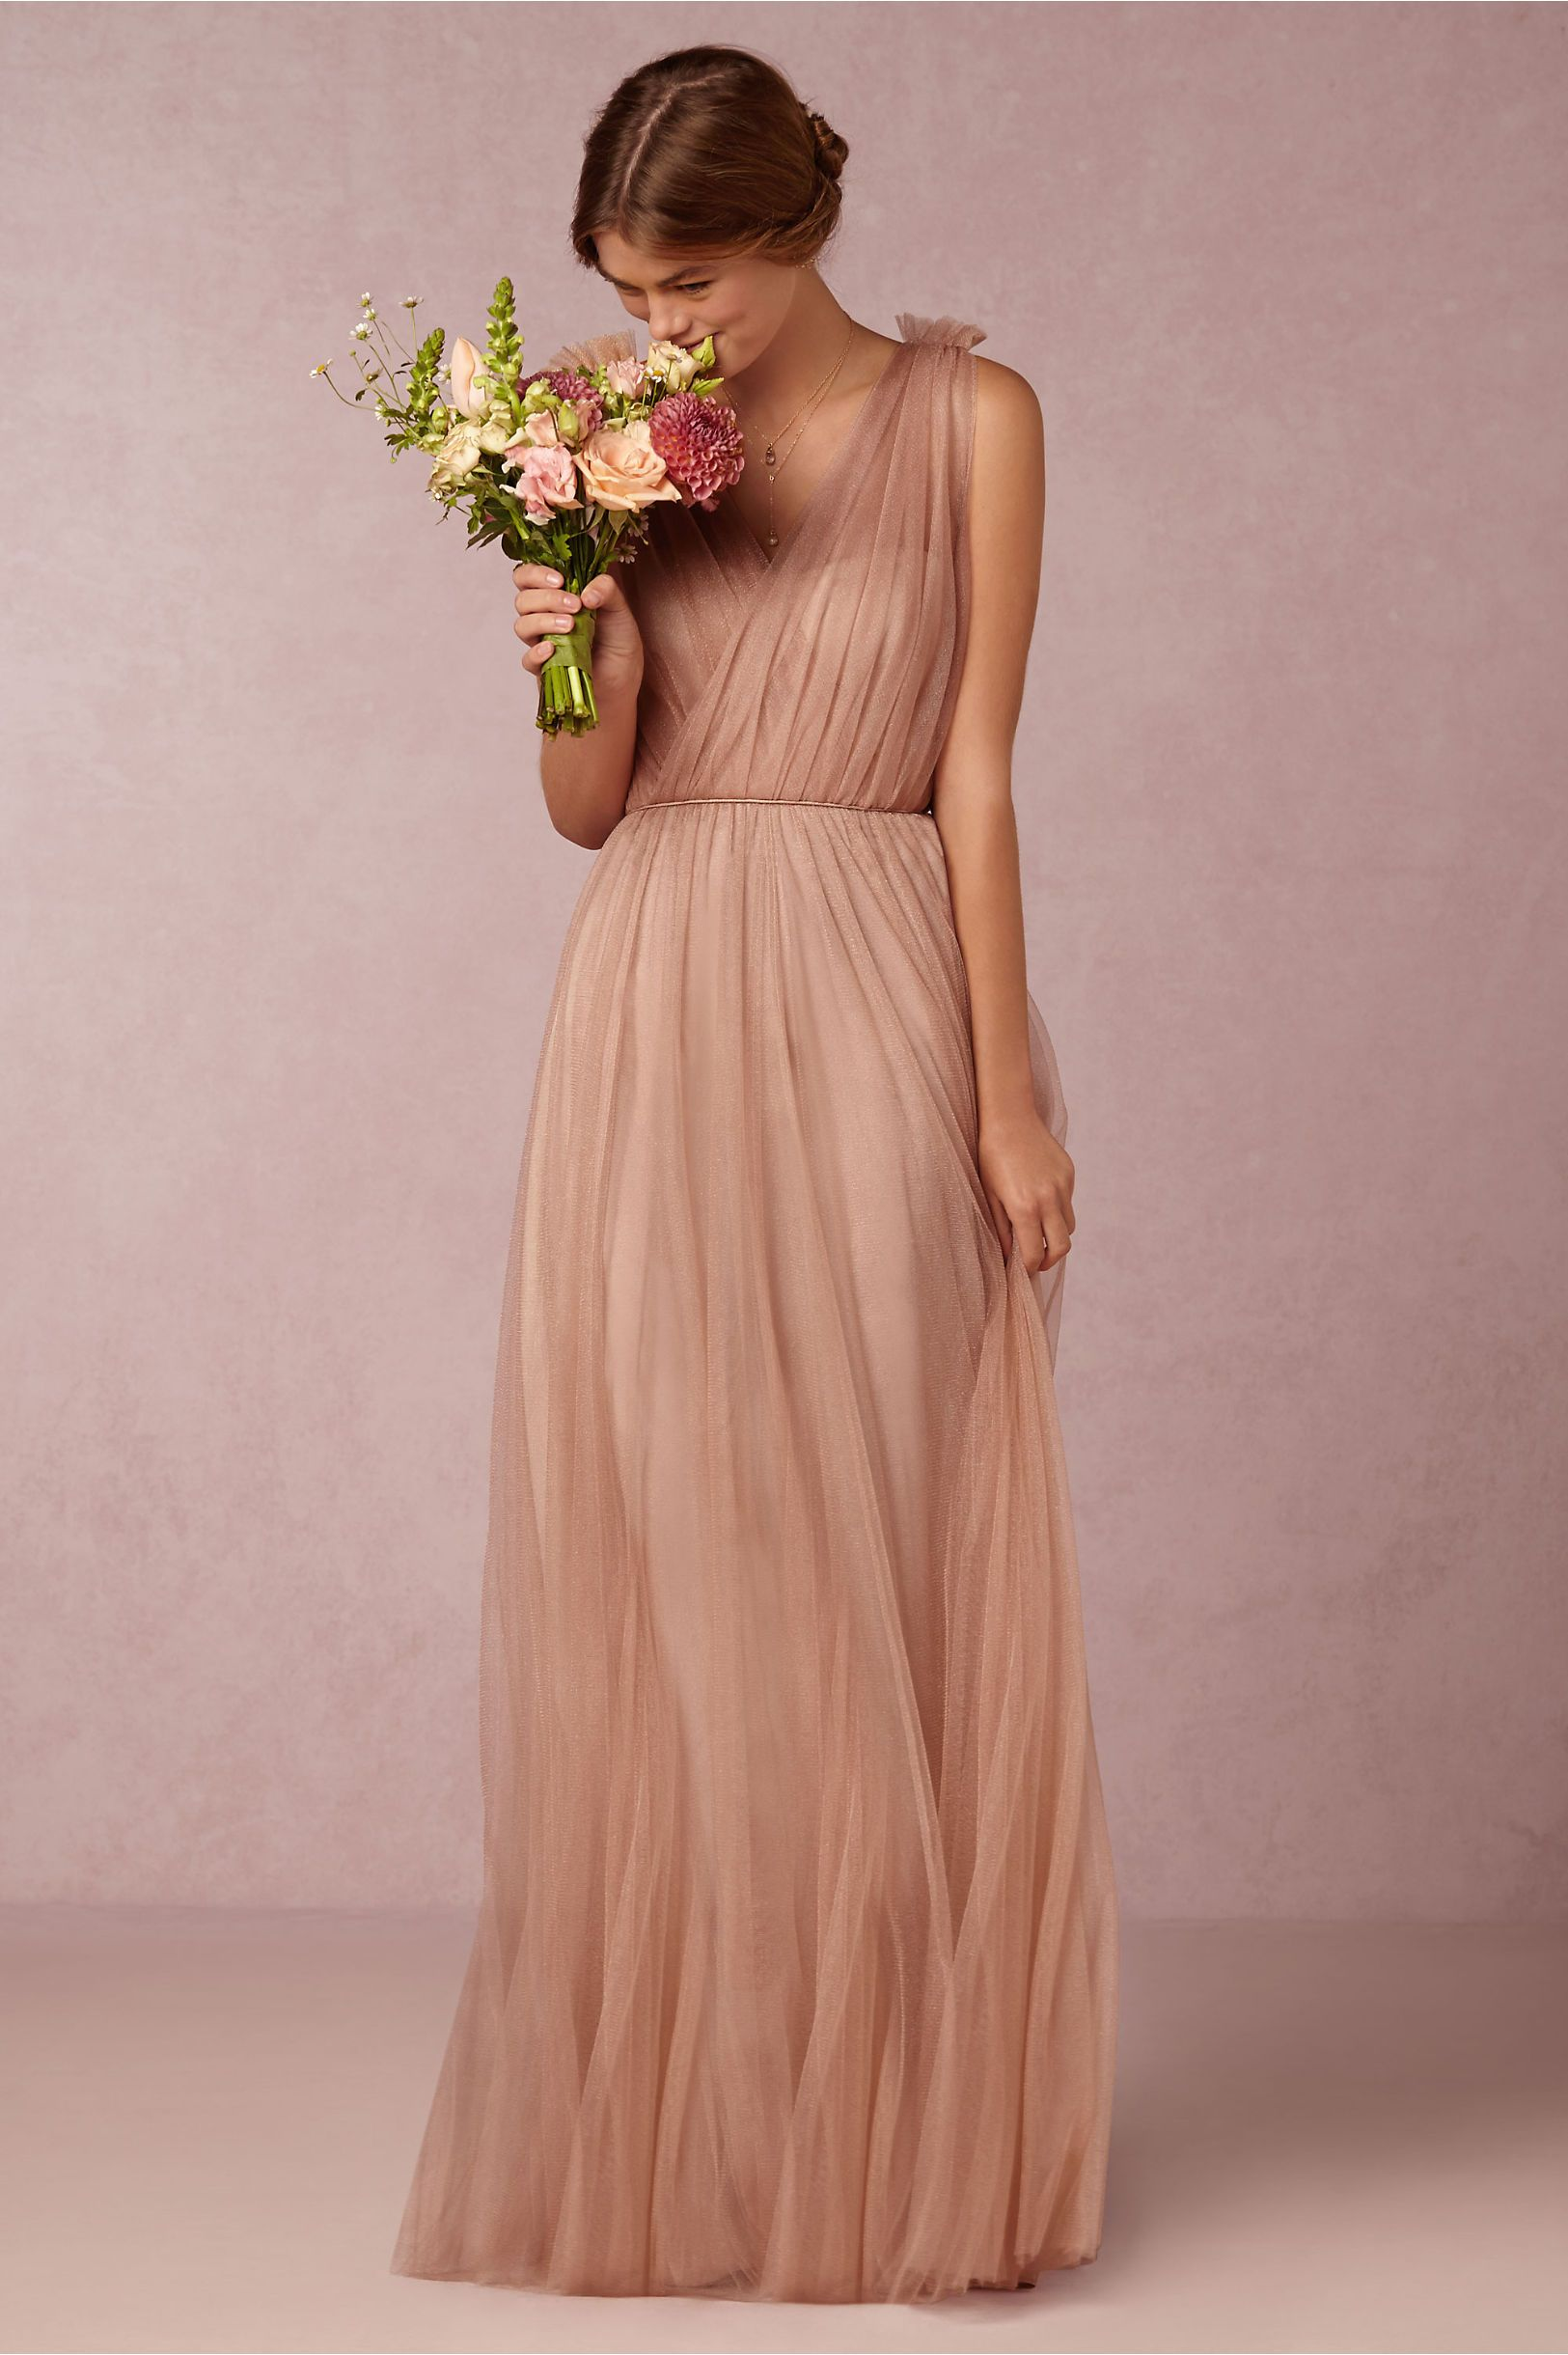 Long pink tulle bridesmaid dress emmy dress in feather from long pink tulle bridesmaid dress emmy dress in feather from bhldn ombrellifo Images